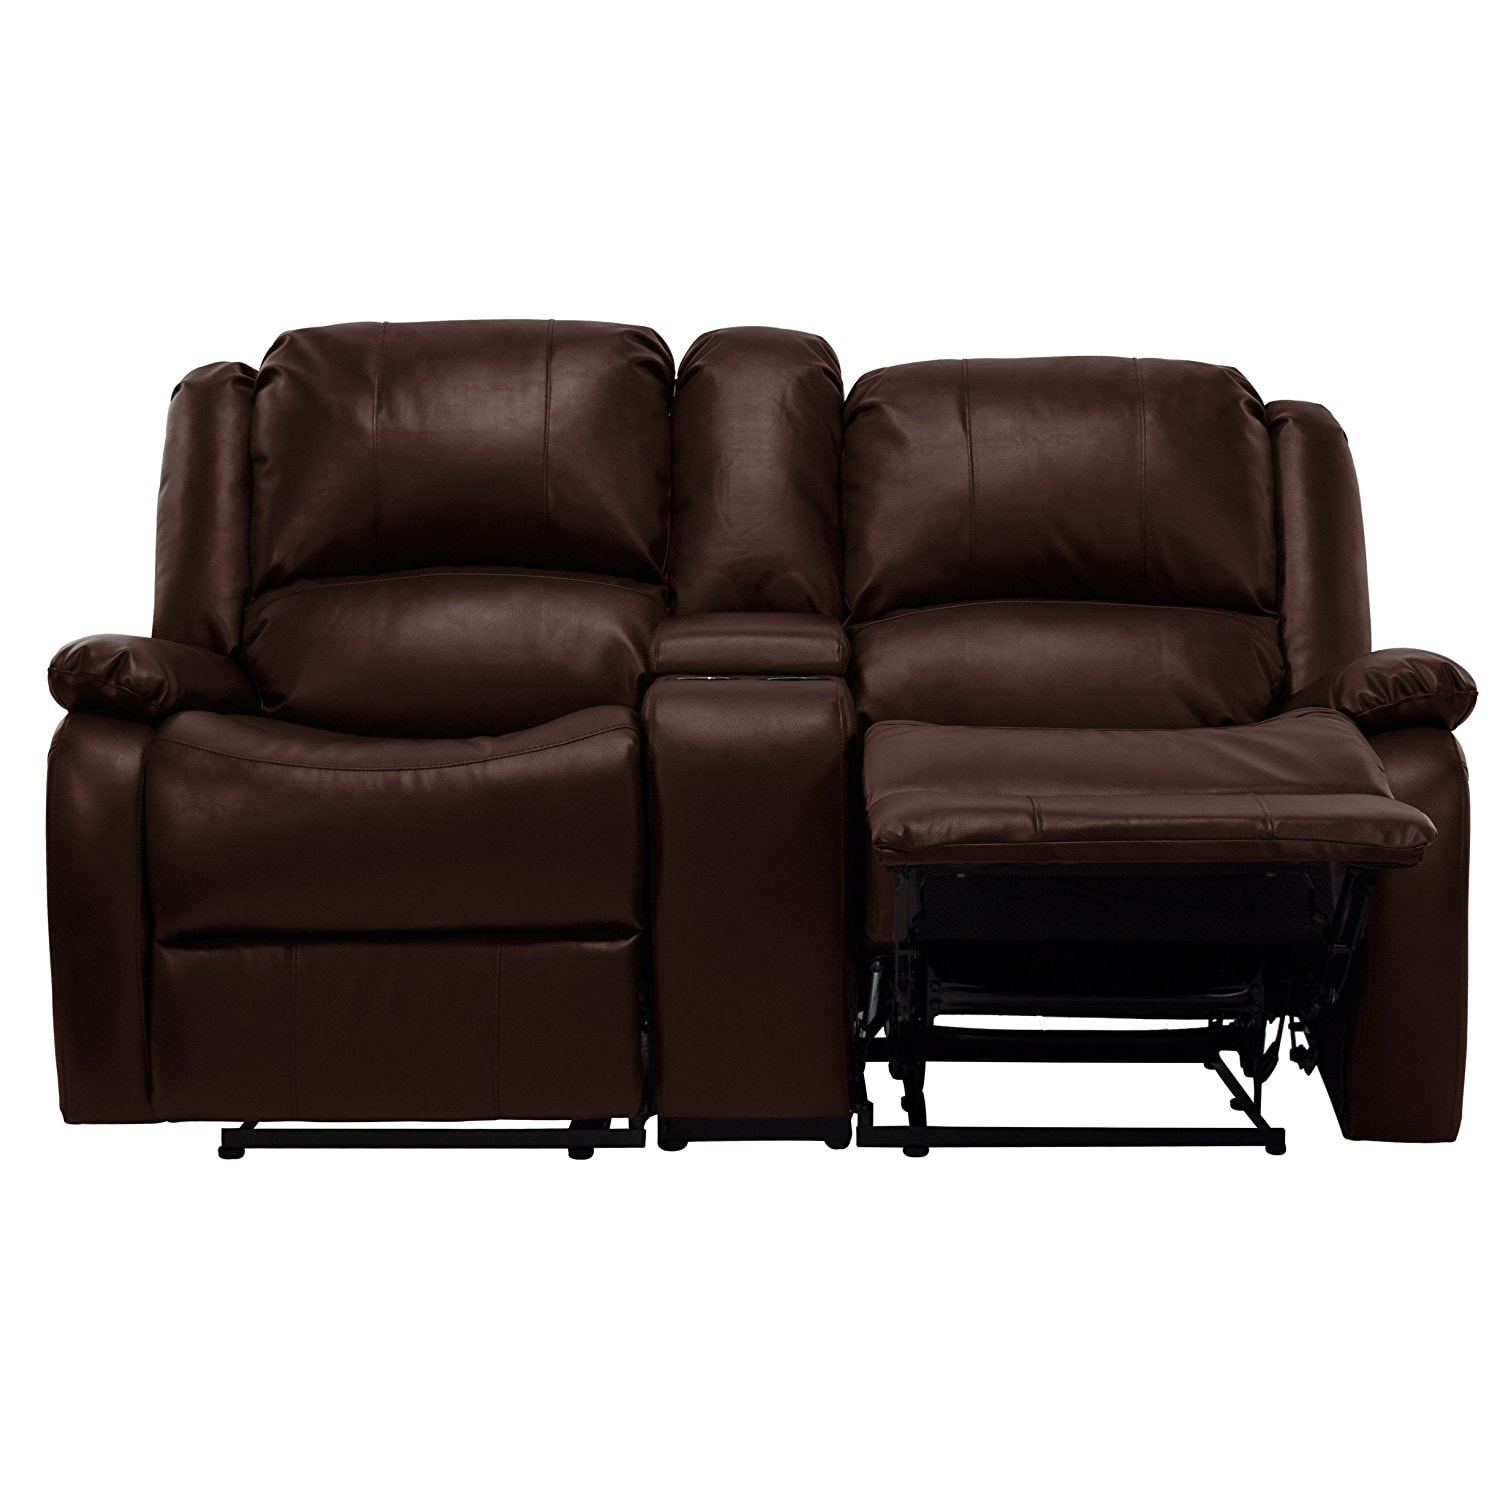 67 Quot Double Rv Zero Wall Hugger Recliner Sofa W Console Brown